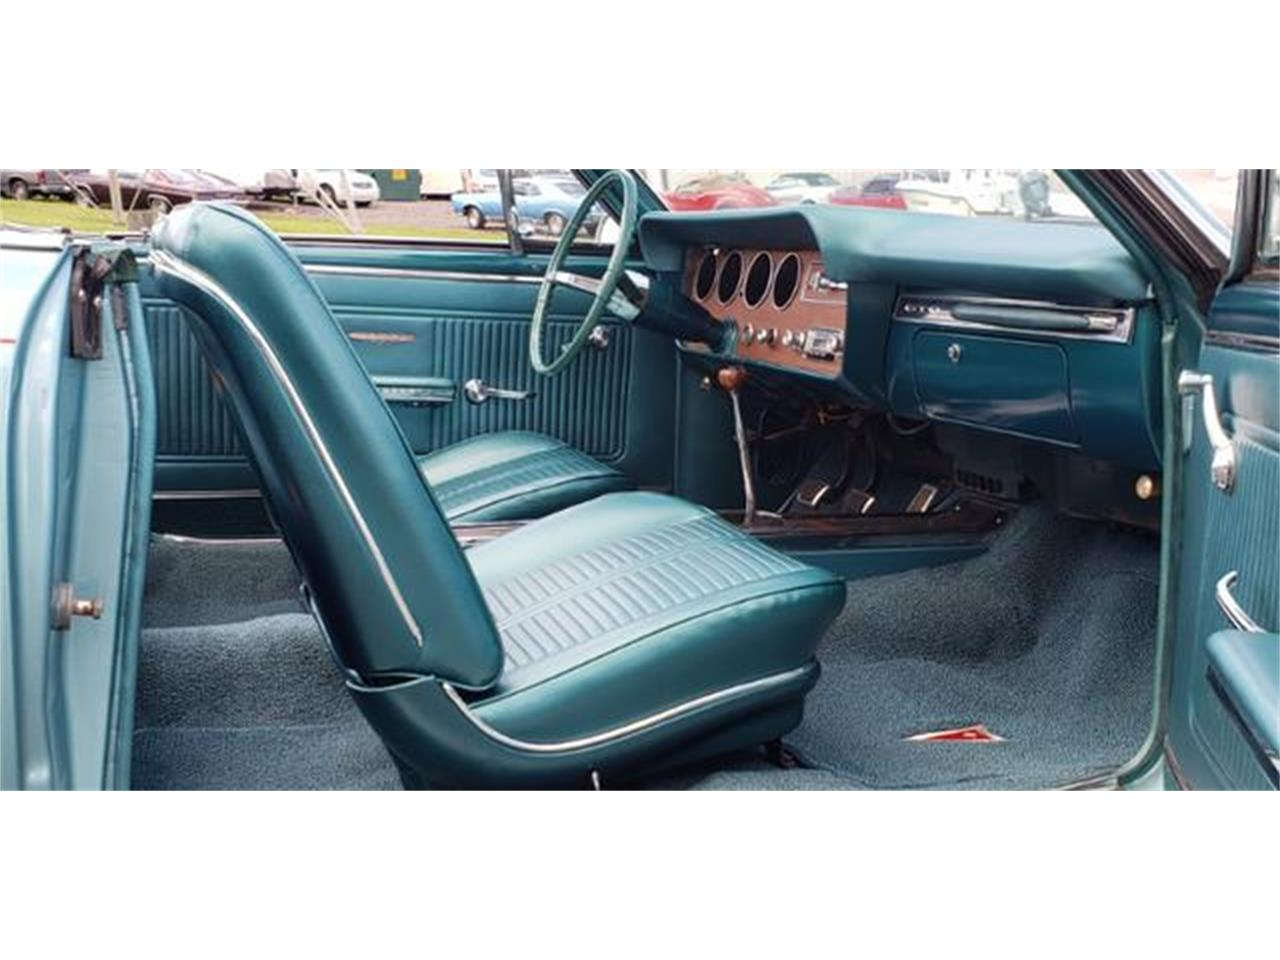 Large Picture of '66 Pontiac GTO located in Linthicum Maryland - $52,500.00 - QEBL